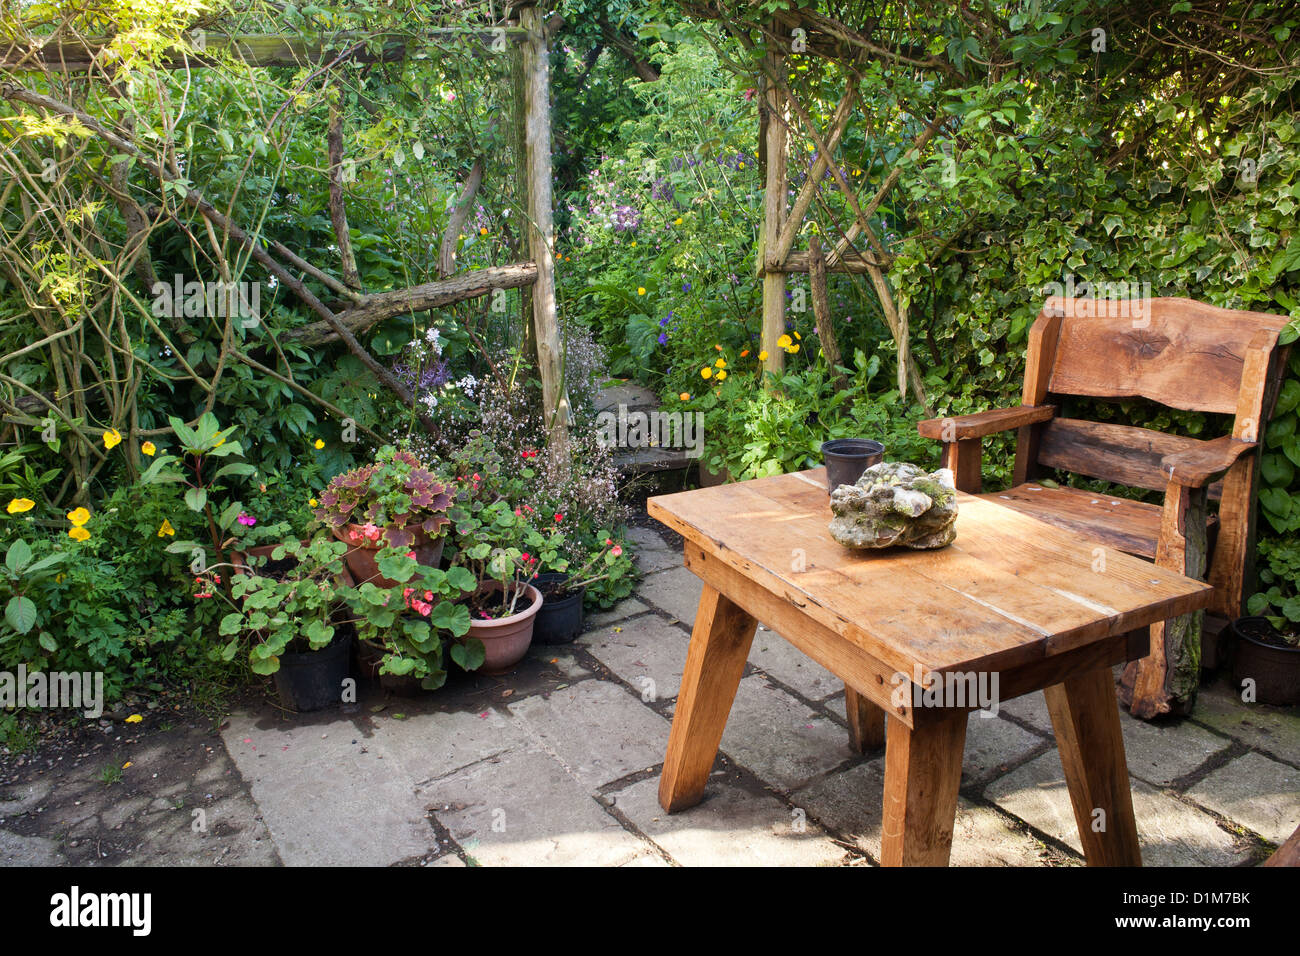 rustic garden furniture. Rustic Garden Furniture. Relaxing Area On A Patio With Furniture